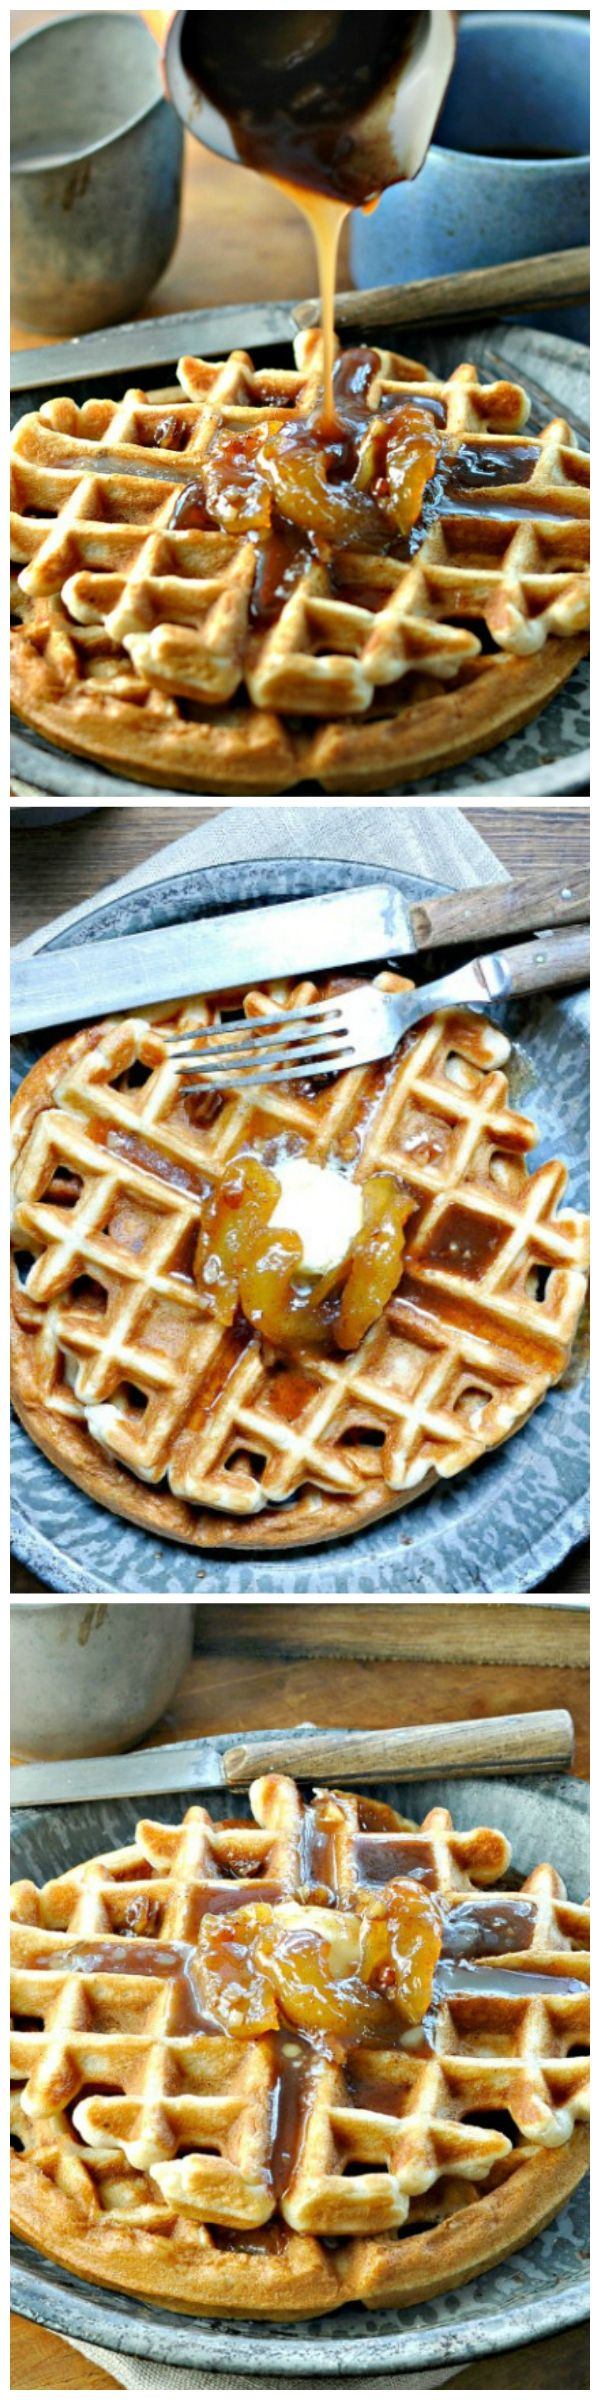 Apple Pecan Waffles with Apple Pecan Topping - These #waffles are perfect for #Fall and full of sweet comfort!